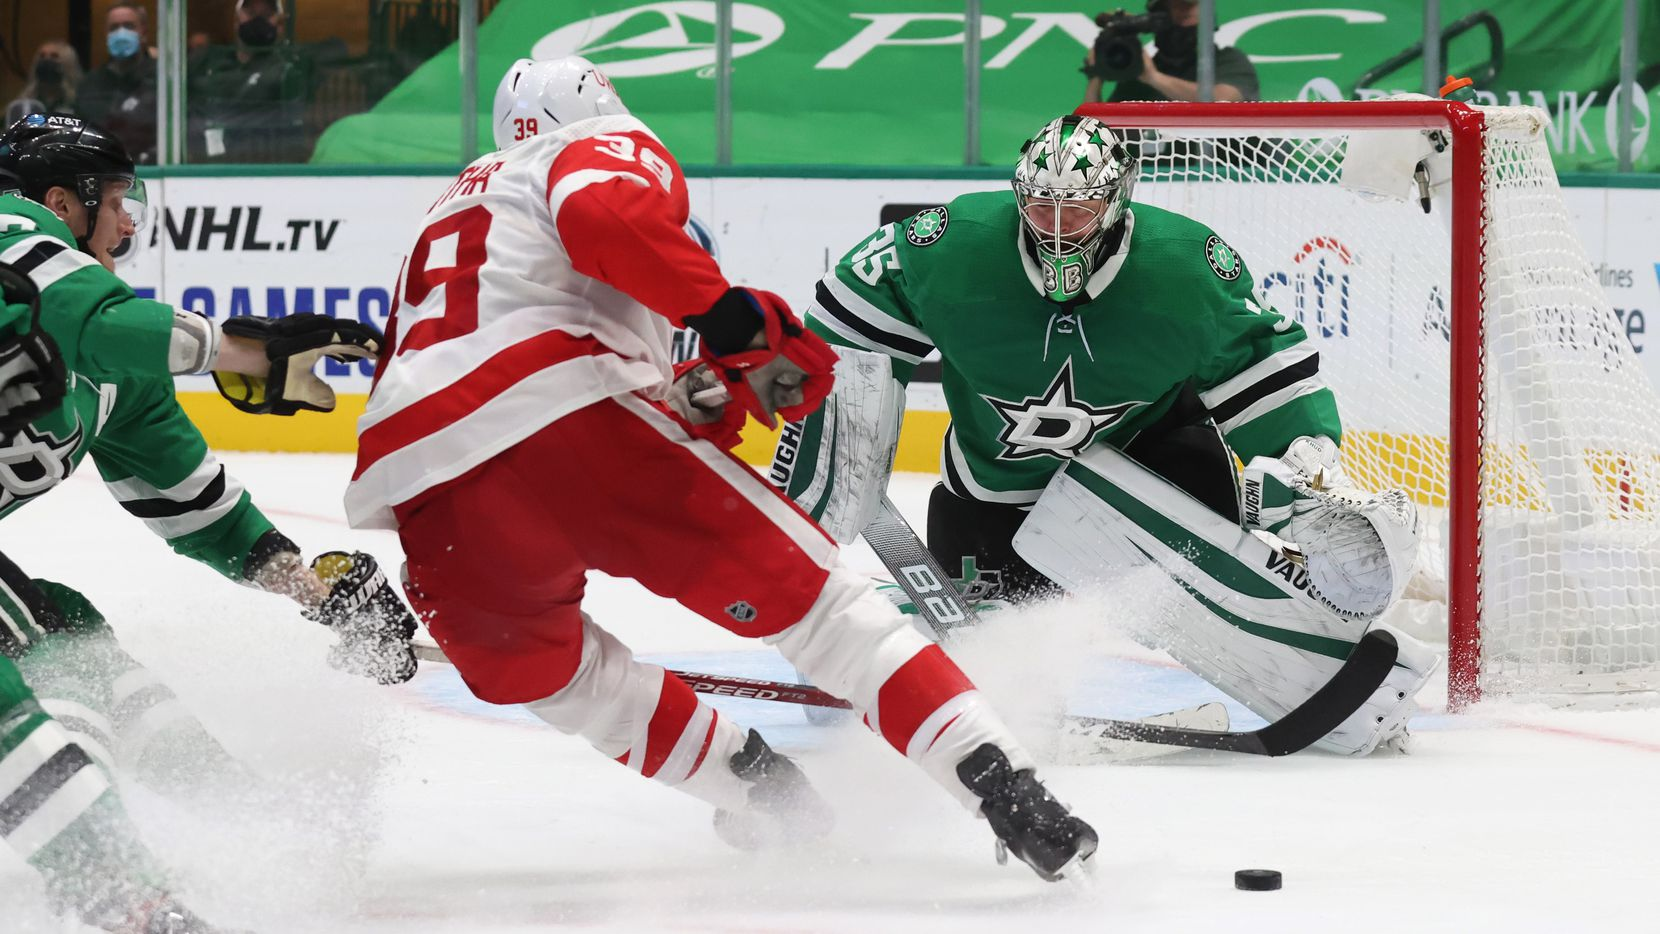 Dallas Stars goaltender Anton Khudobin (35) defendsd the goal as Detroit Red Wings right wing Anthony Mantha (39) advances during the overtime at American Airlines Center on Tuesday, January 26, 2021in Dallas.